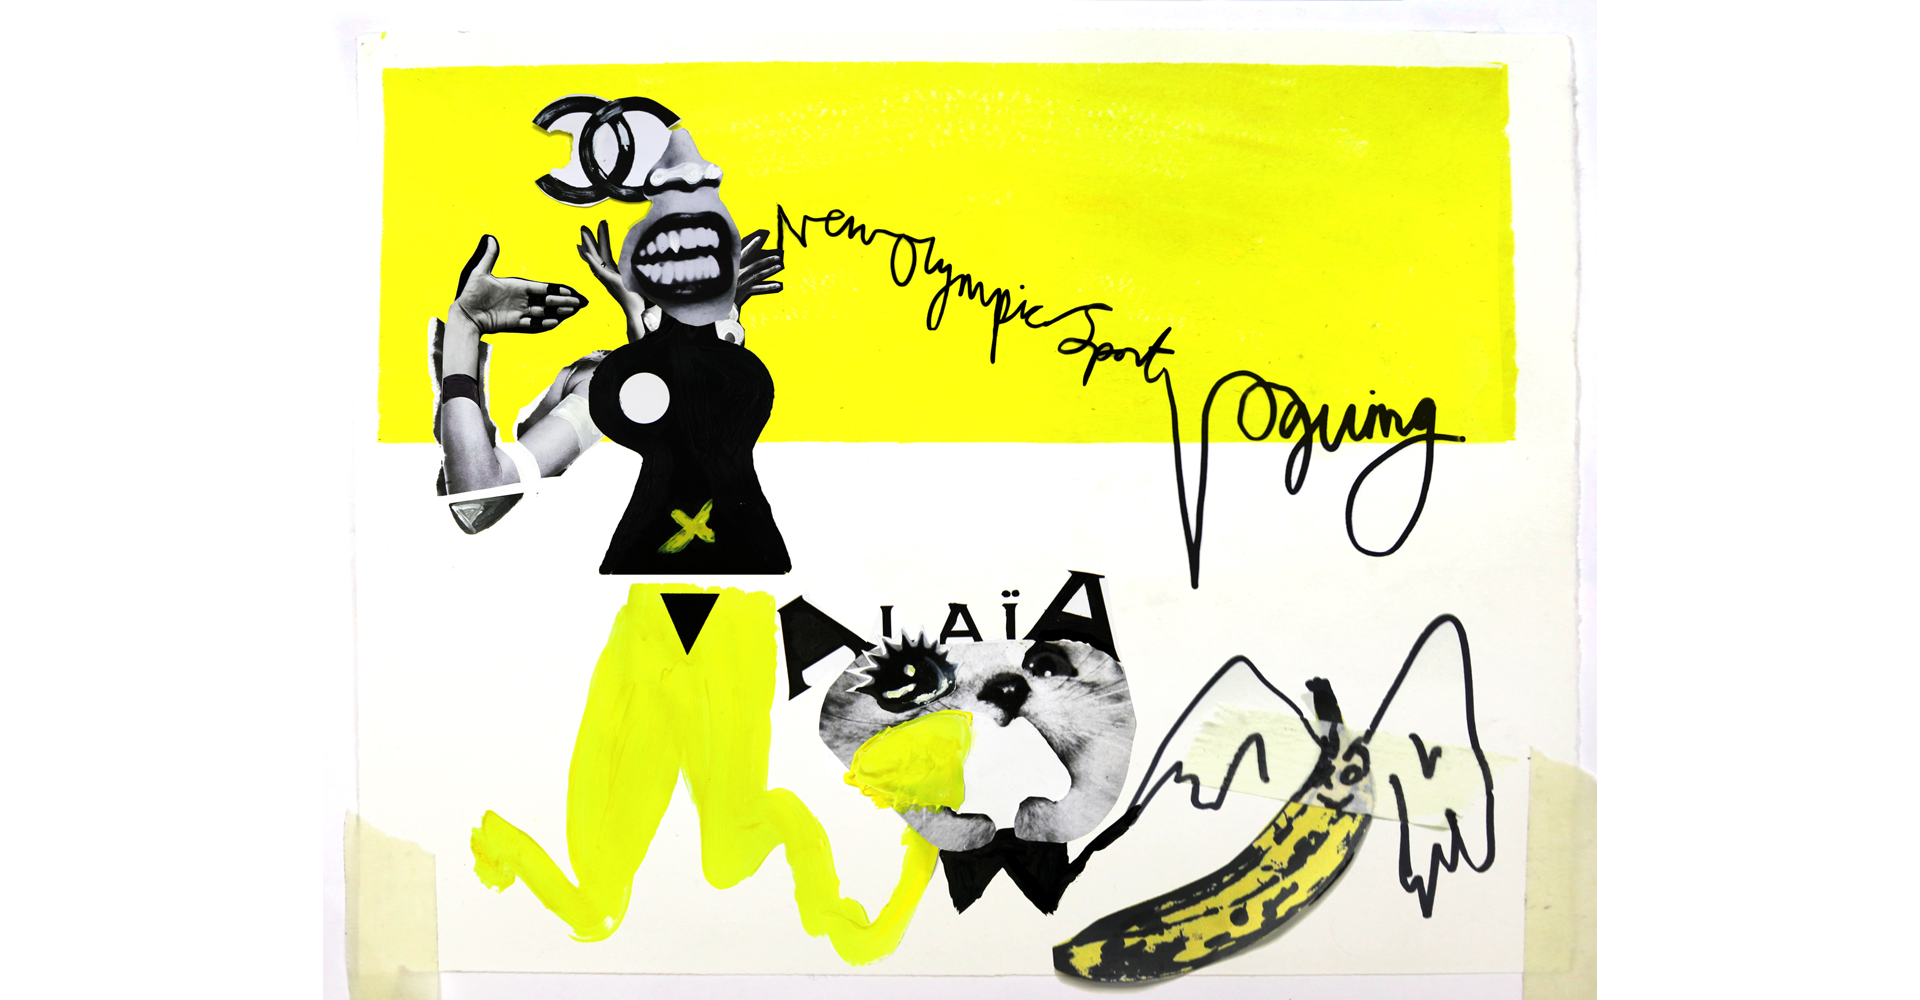 Quentin Jones x Opening Ceremony   :   Opening Ceremony founders Humberto Leon and Carol Lim give their take on the Olympics, illustrated by the striking collages of Quentin Jones.